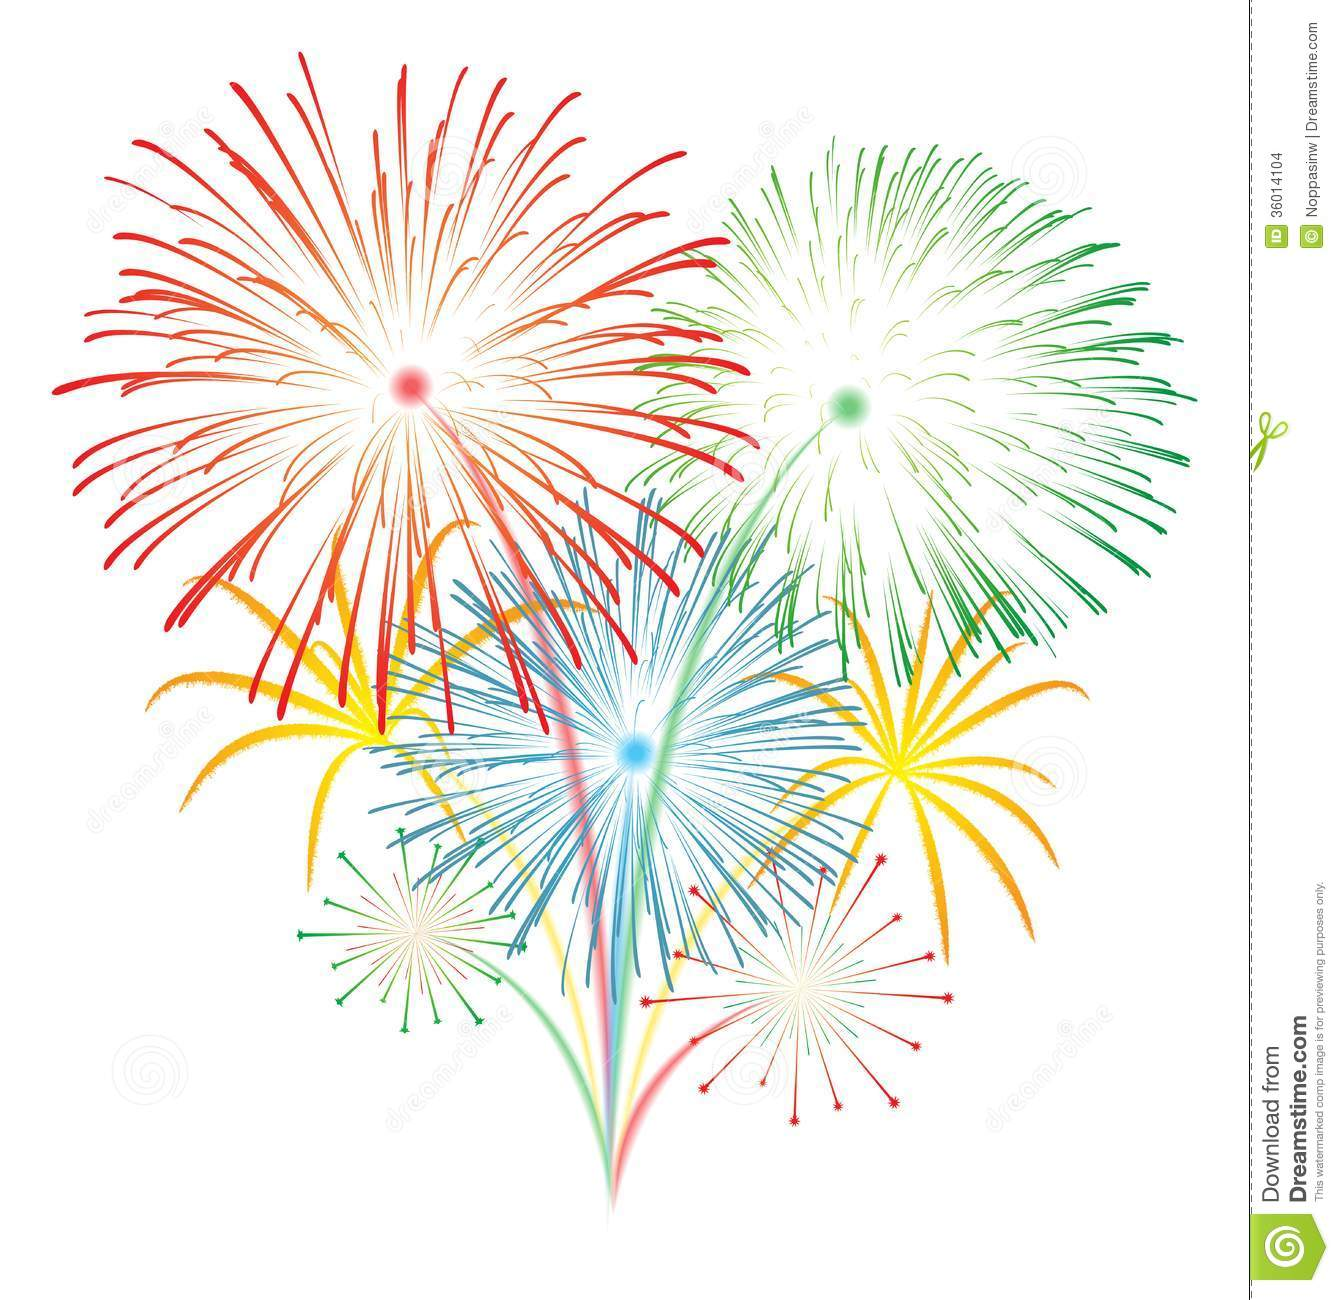 Fireworks Vector Stock Images - Image: 36014104